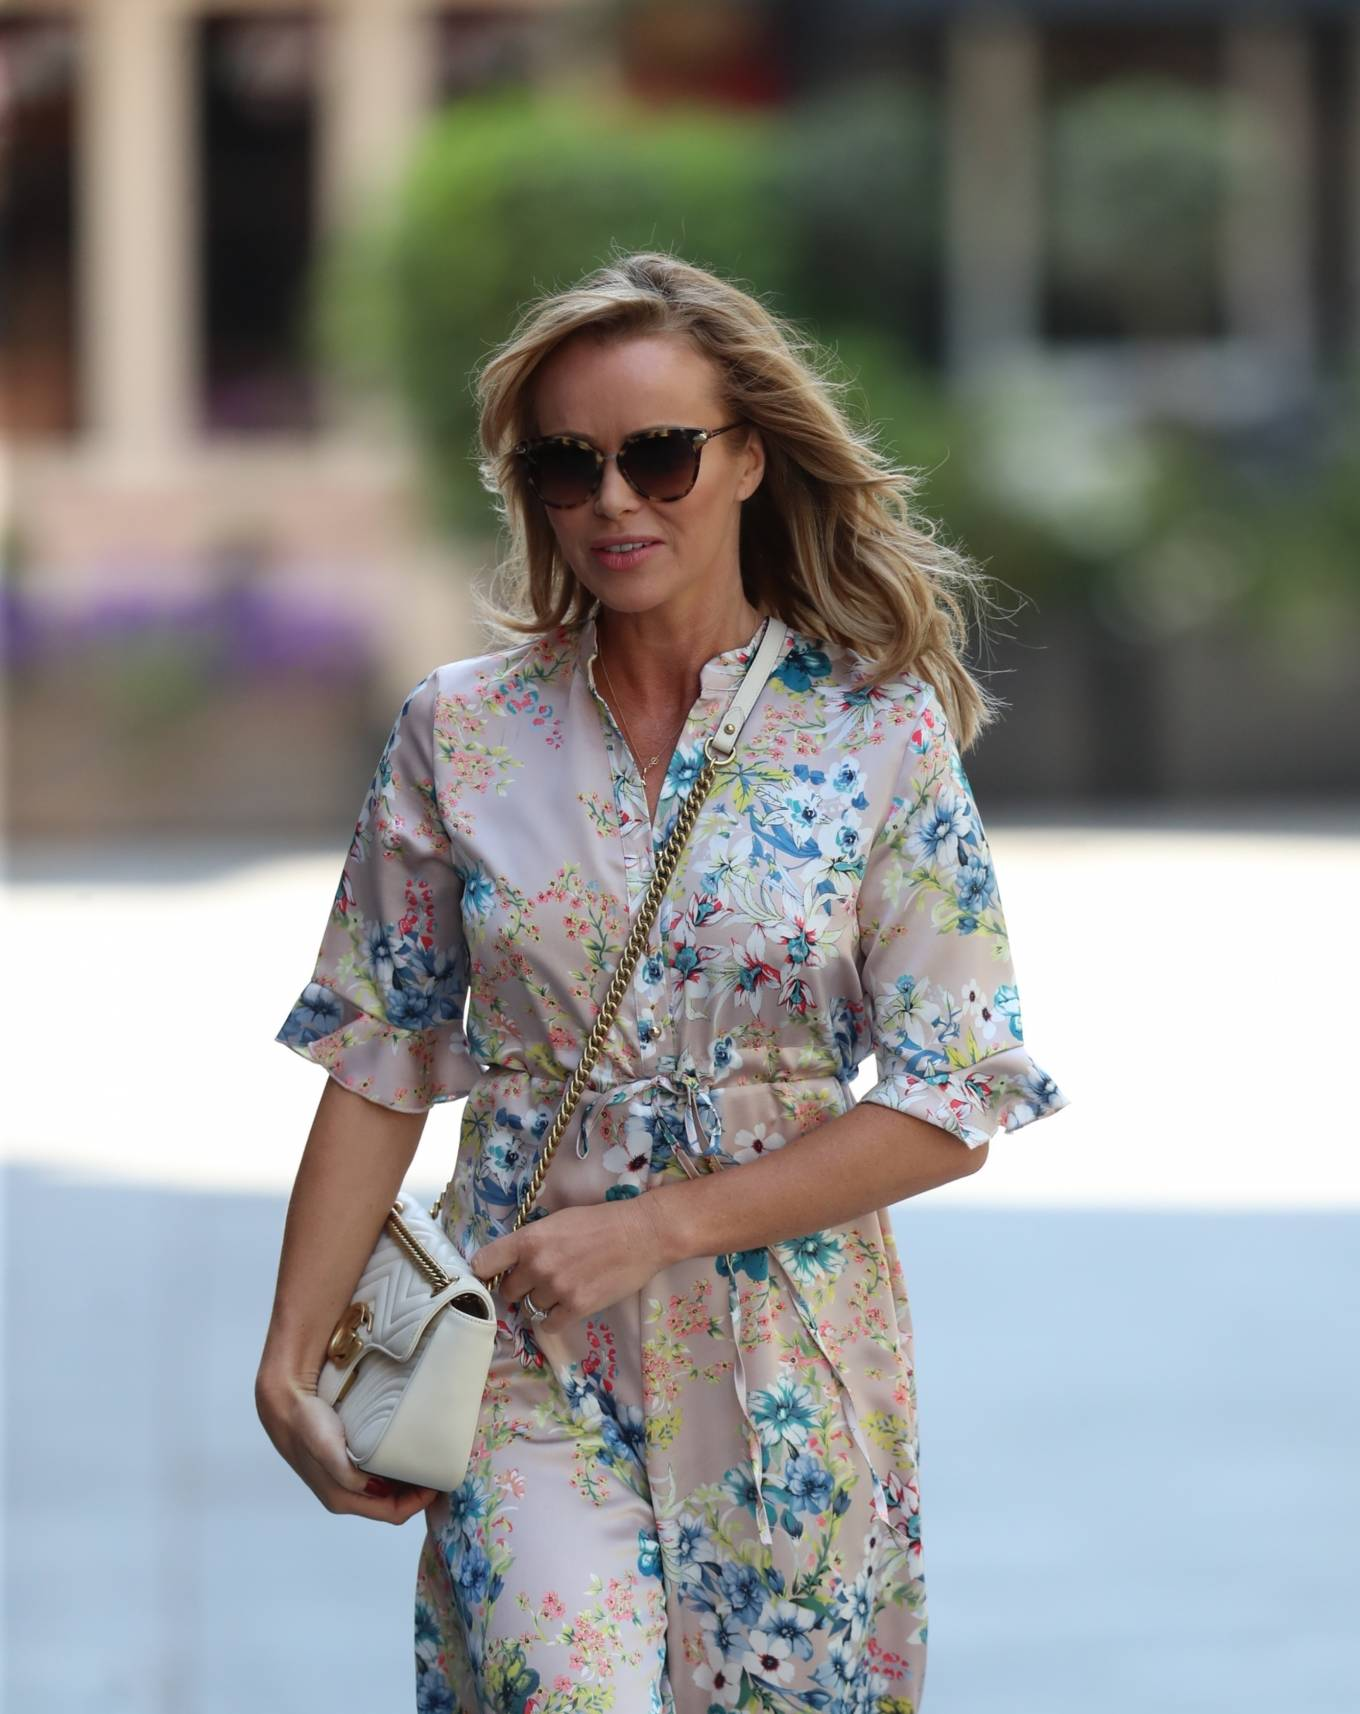 Amanda Holden 2020 : Amanda Holden – Spotted in floral jumpsuit at Global Radio Studios-04